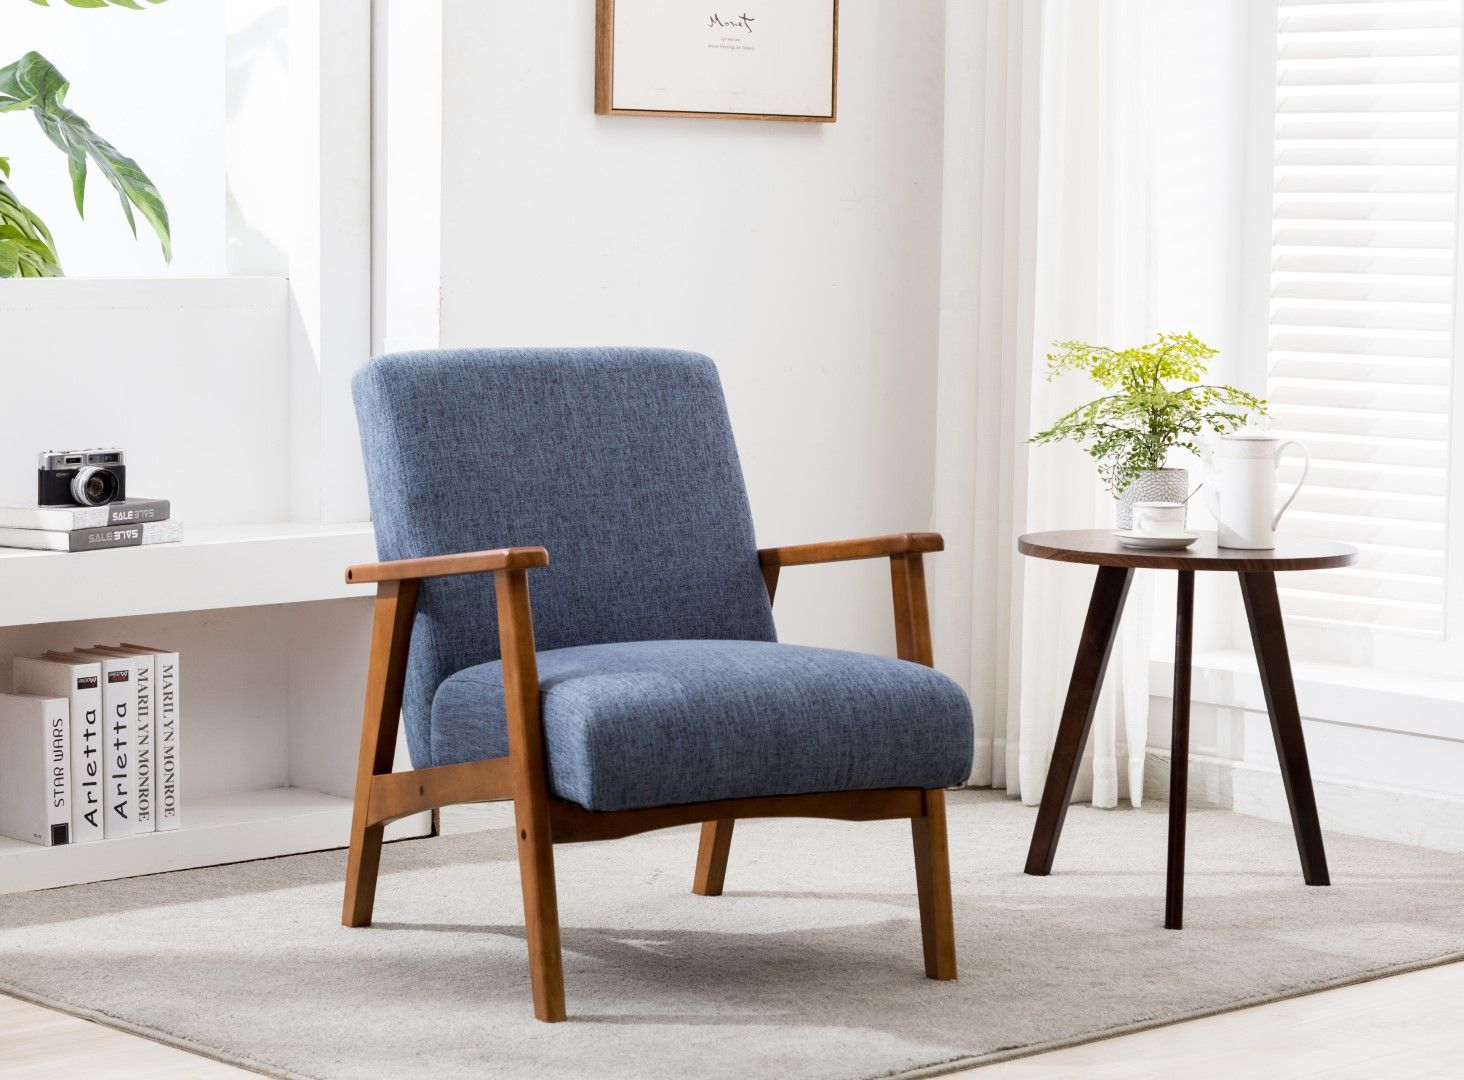 Porthos Home Layla Accent Chair With Beech Wood Legs Arms And Hemp Fabric Upholstery Great For Living Rooms Bedrooms And Small Offices Walmart Com Accent Chairs For Living Room Furniture